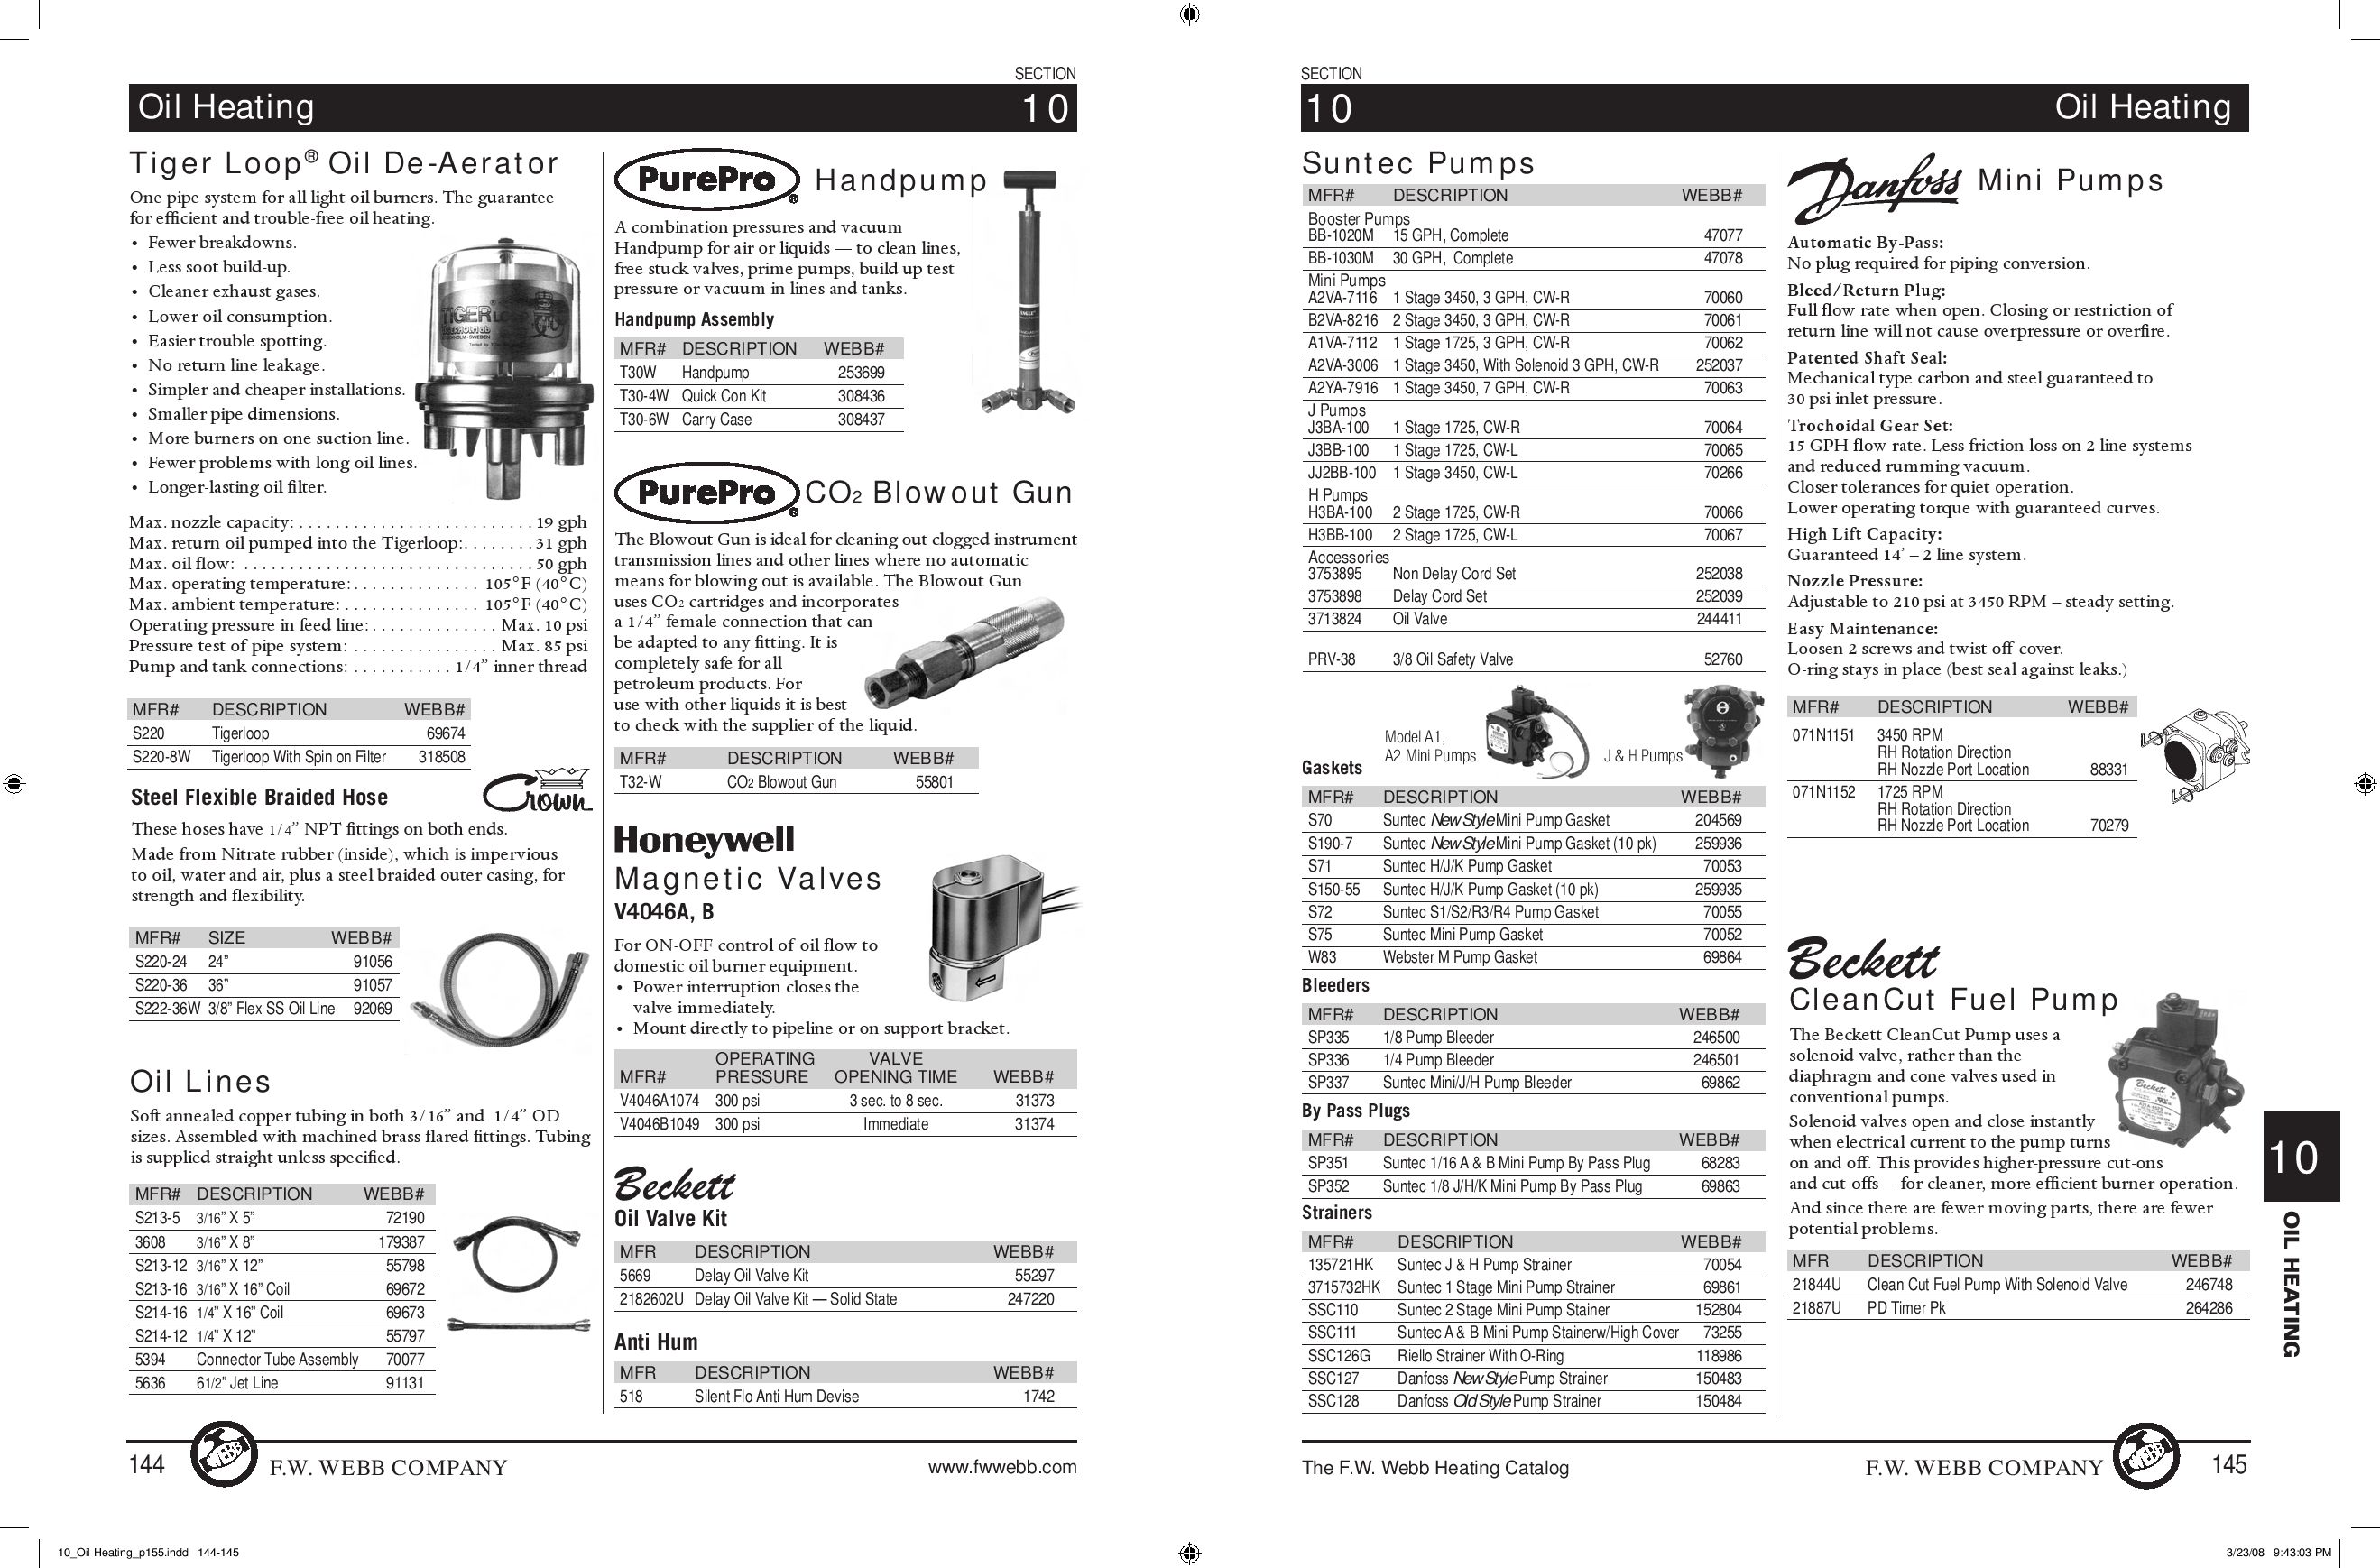 technician u0026 39 s heating catalog by f w  webb company